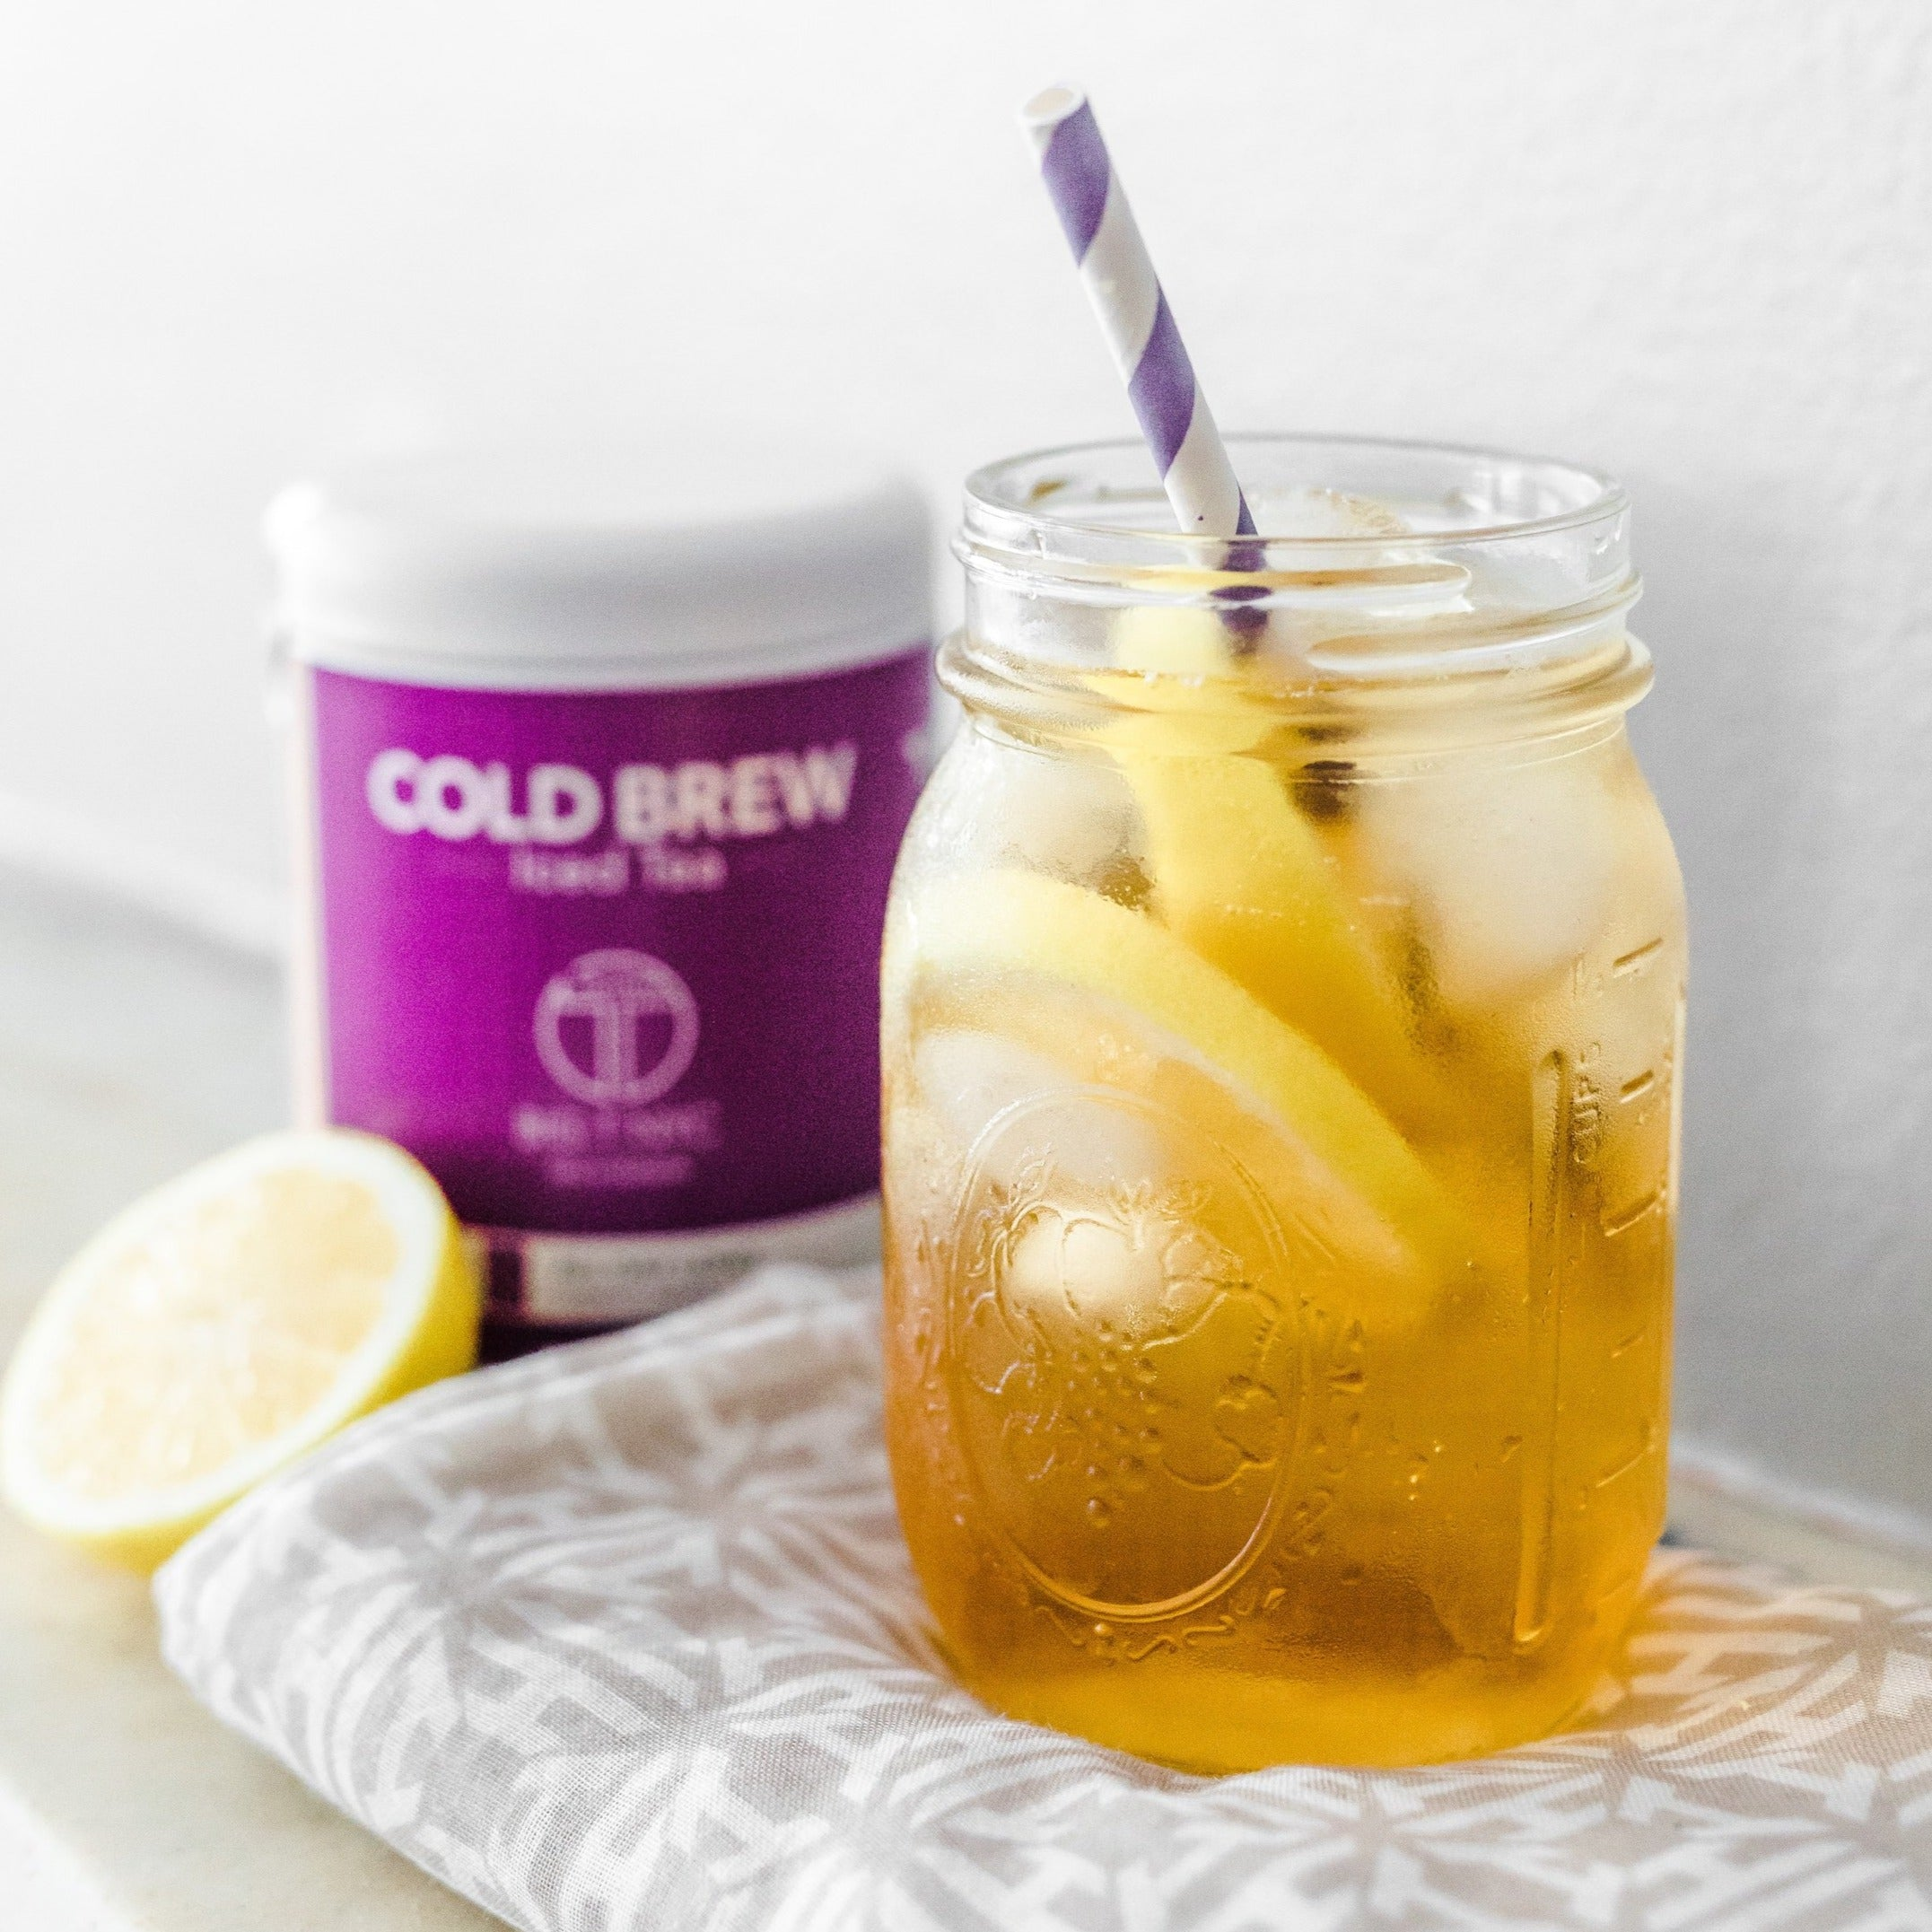 d92703267 Big T NYC White Tea with Superfruits TELL-TALE GLOW Cold Brew Iced Tea